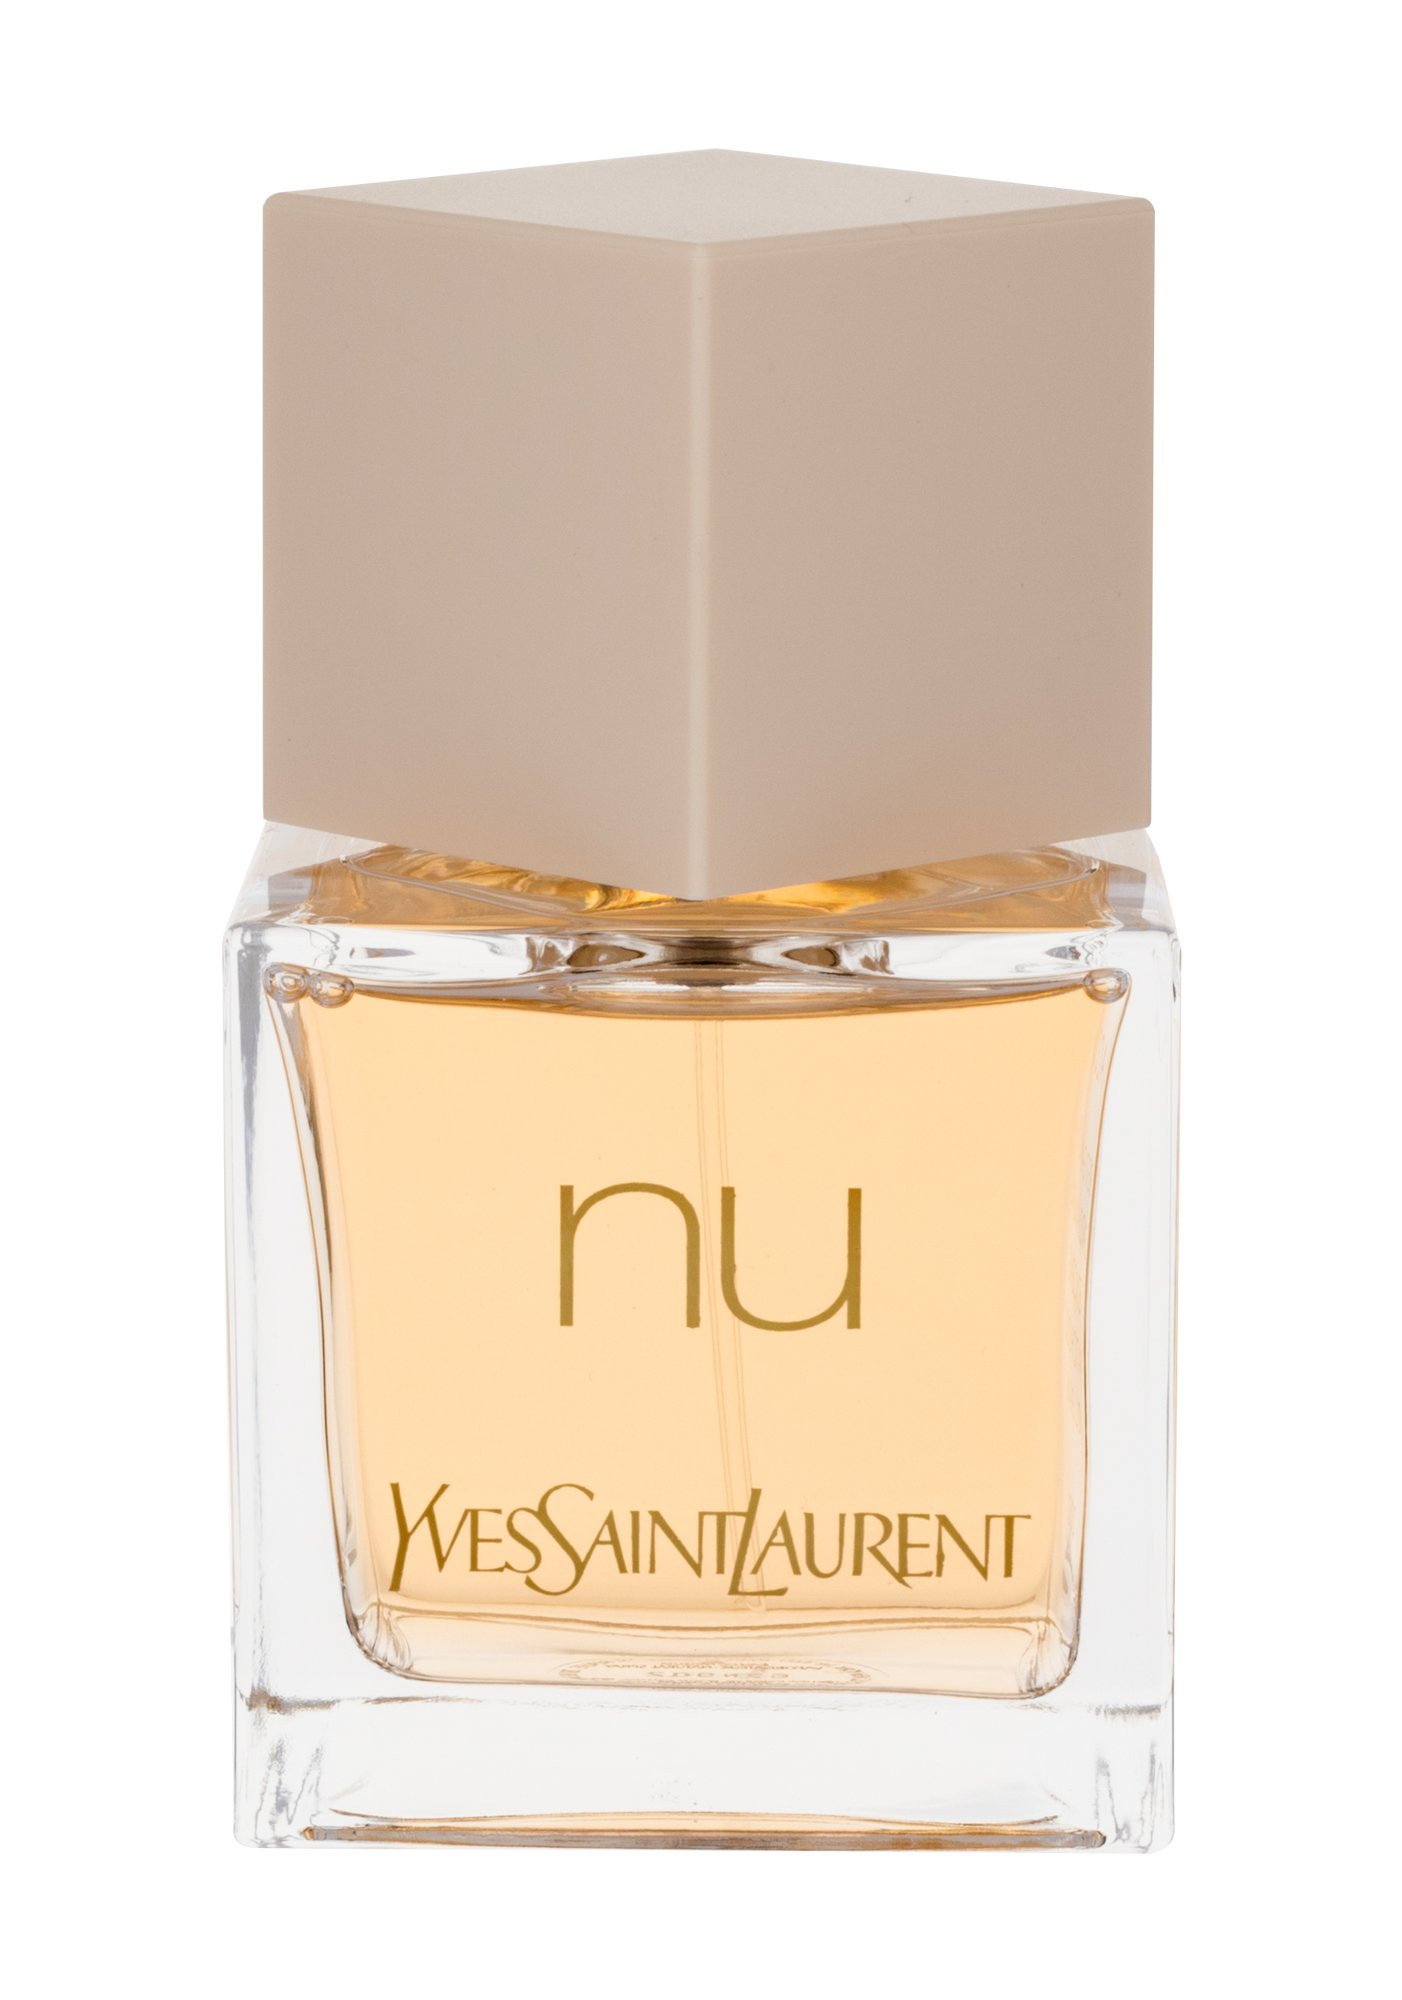 Yves Saint Laurent La Collection Nu, Parfumovaná voda 80ml